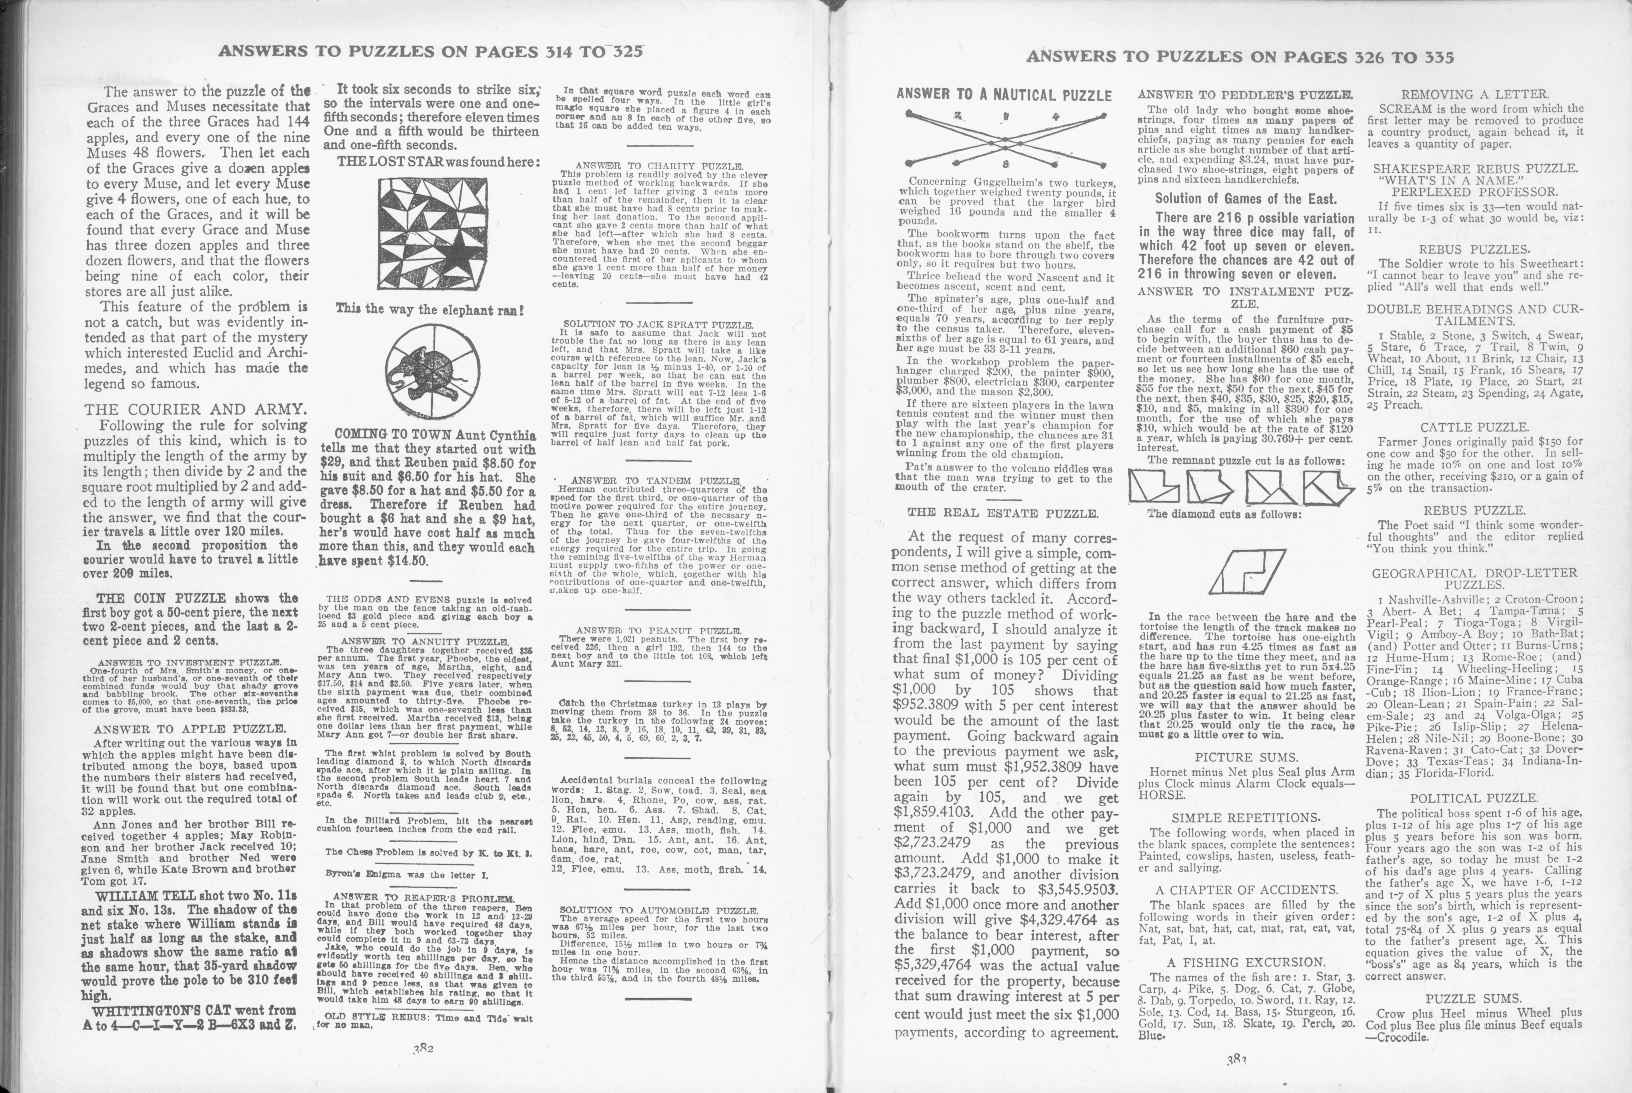 Sam Loyd - Cyclopedia of Puzzles - page 382-383